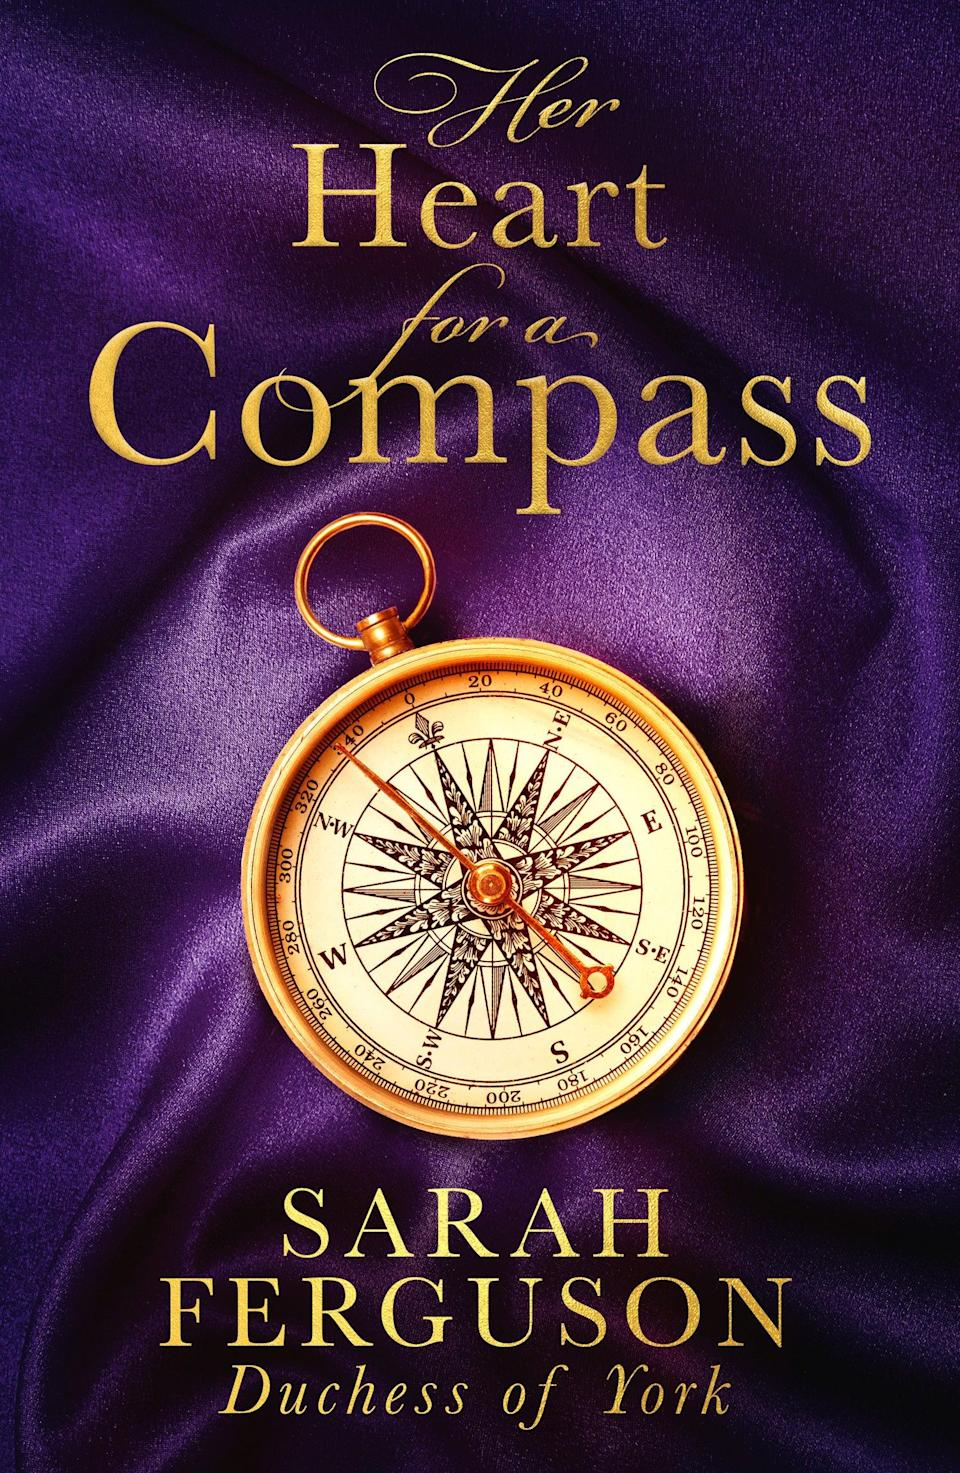 The jacket of the debut novel from Sarah, Duchess of York (PA Media) (PA Media)